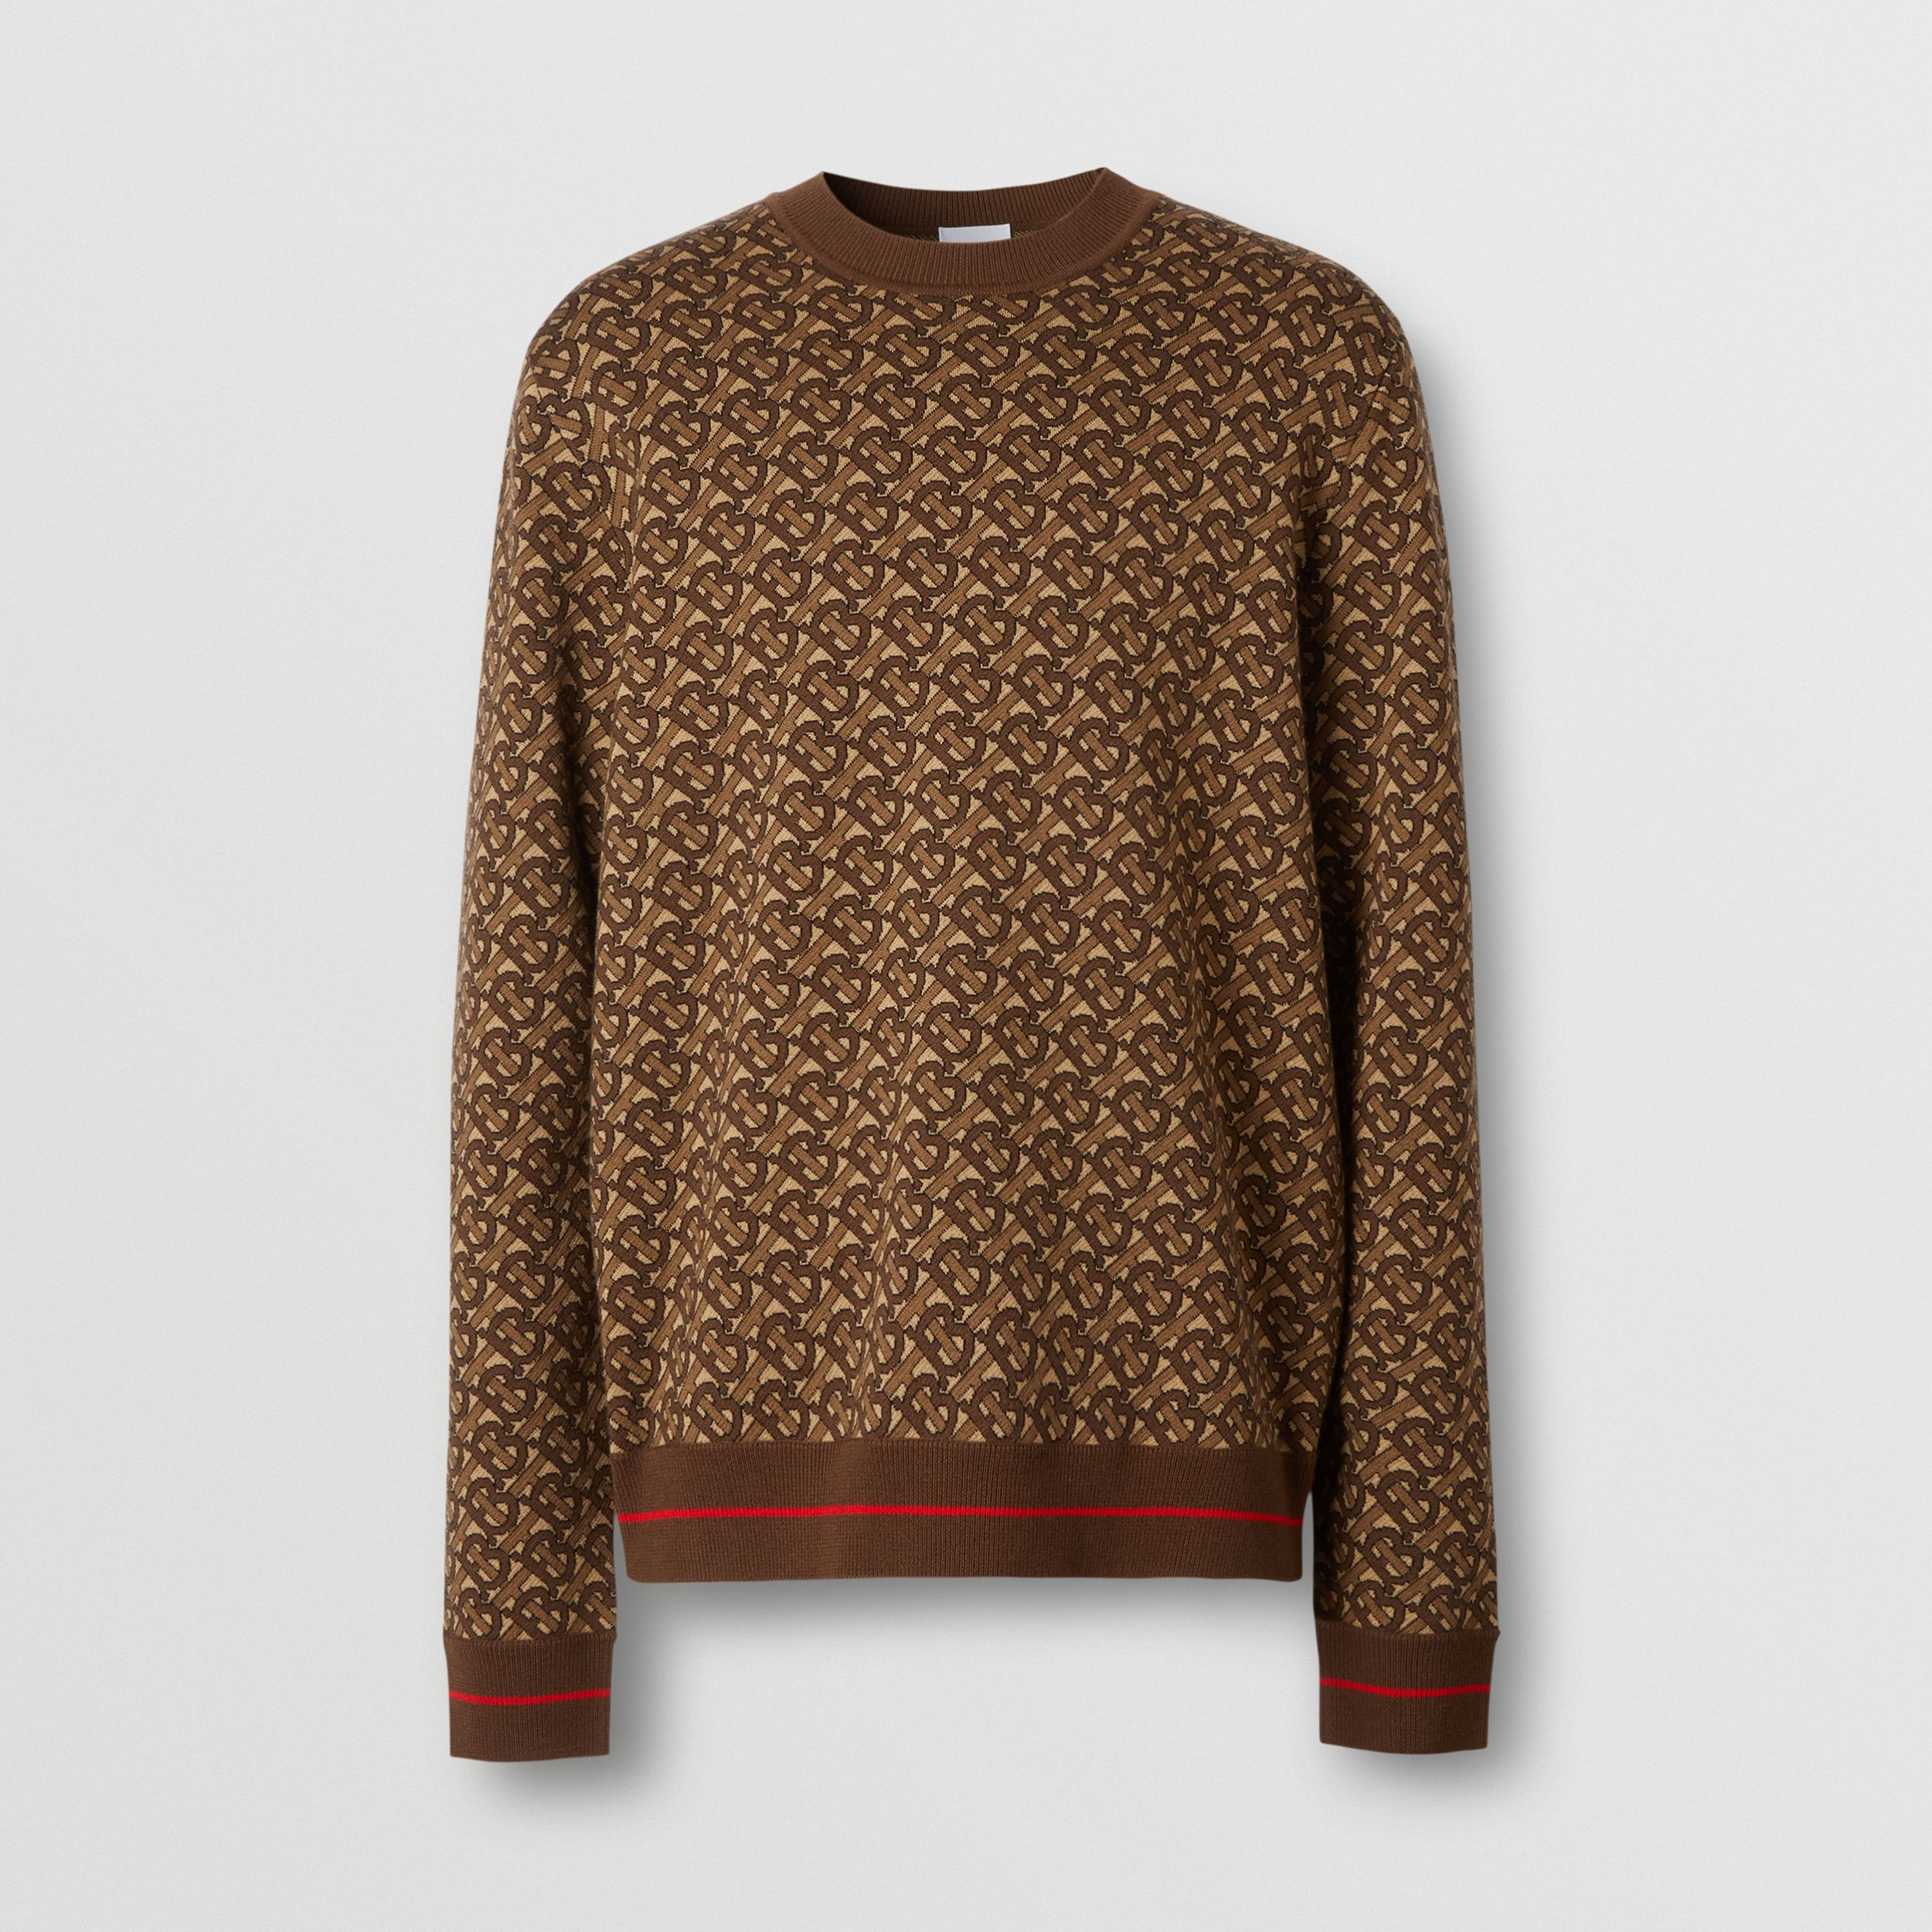 Monogram Merino Wool Jacquard Sweater in Bridle Brown - Men | Burberry Hong Kong S.A.R. - 4